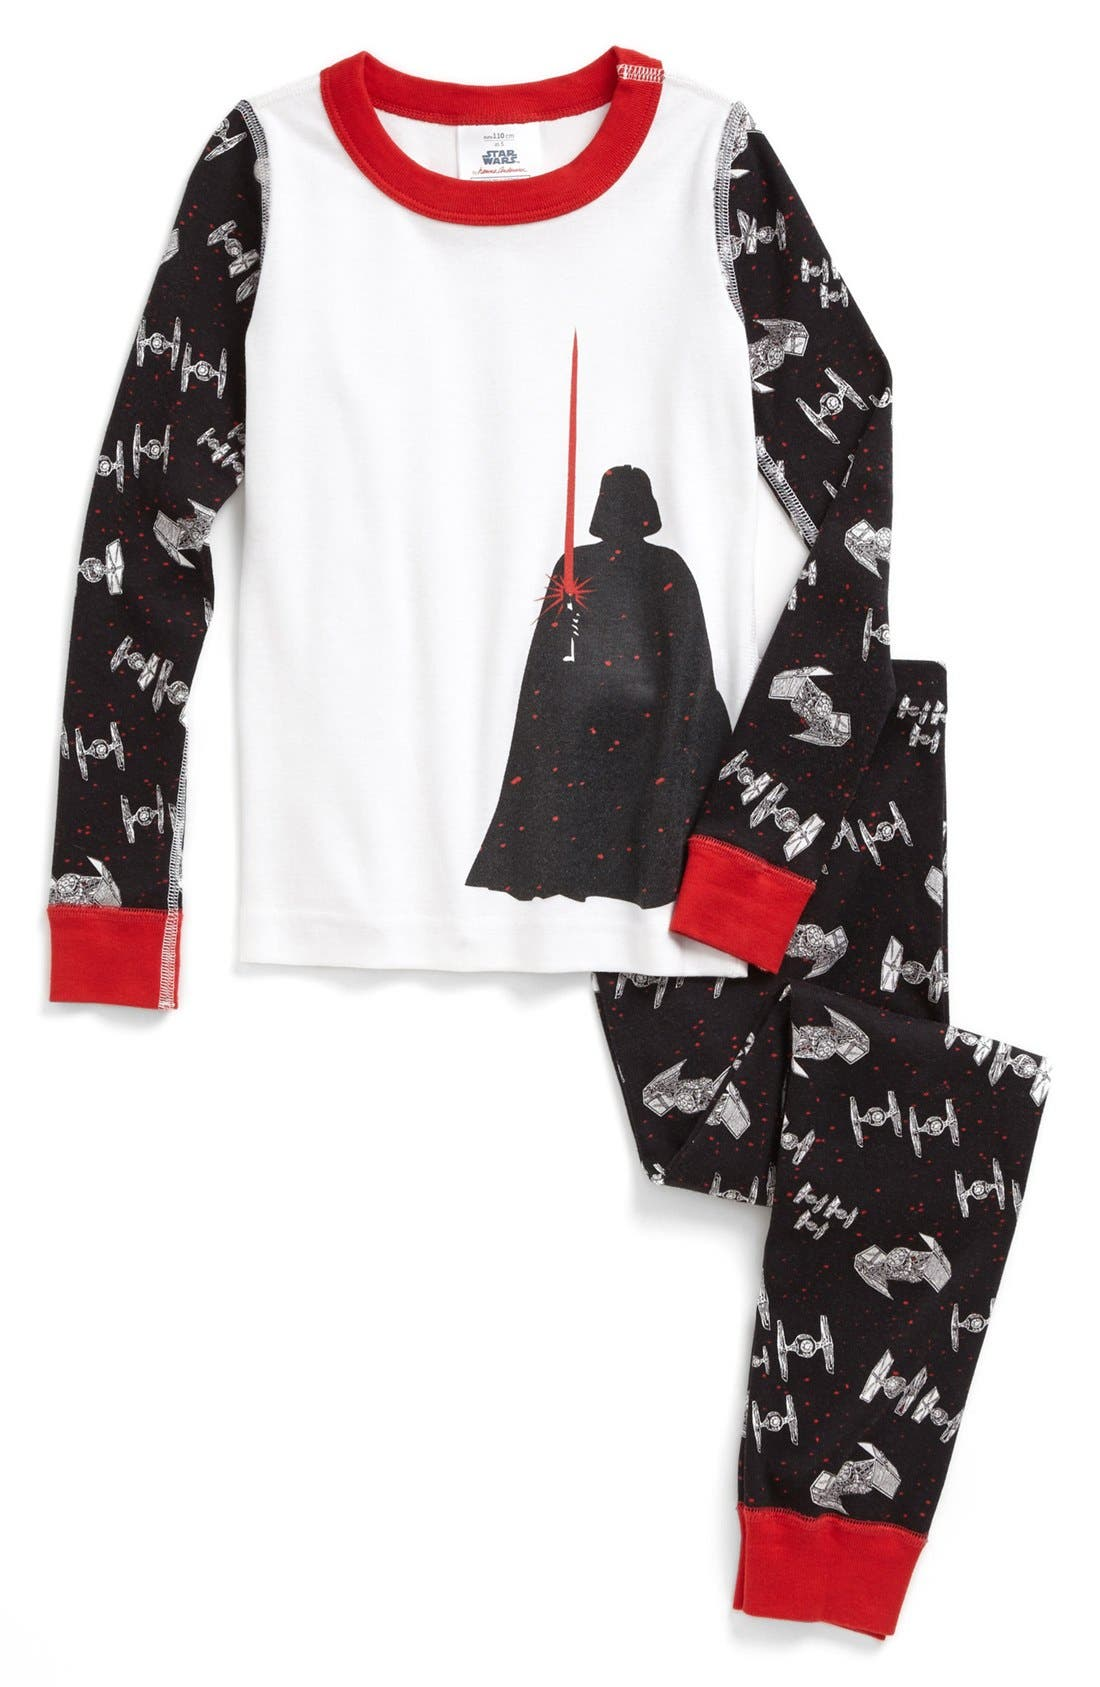 Main Image - Hanna Andersson 'Lightsaber' Organic Cotton Two-Piece Fitted Pajamas (Little Boys & Big Boys)